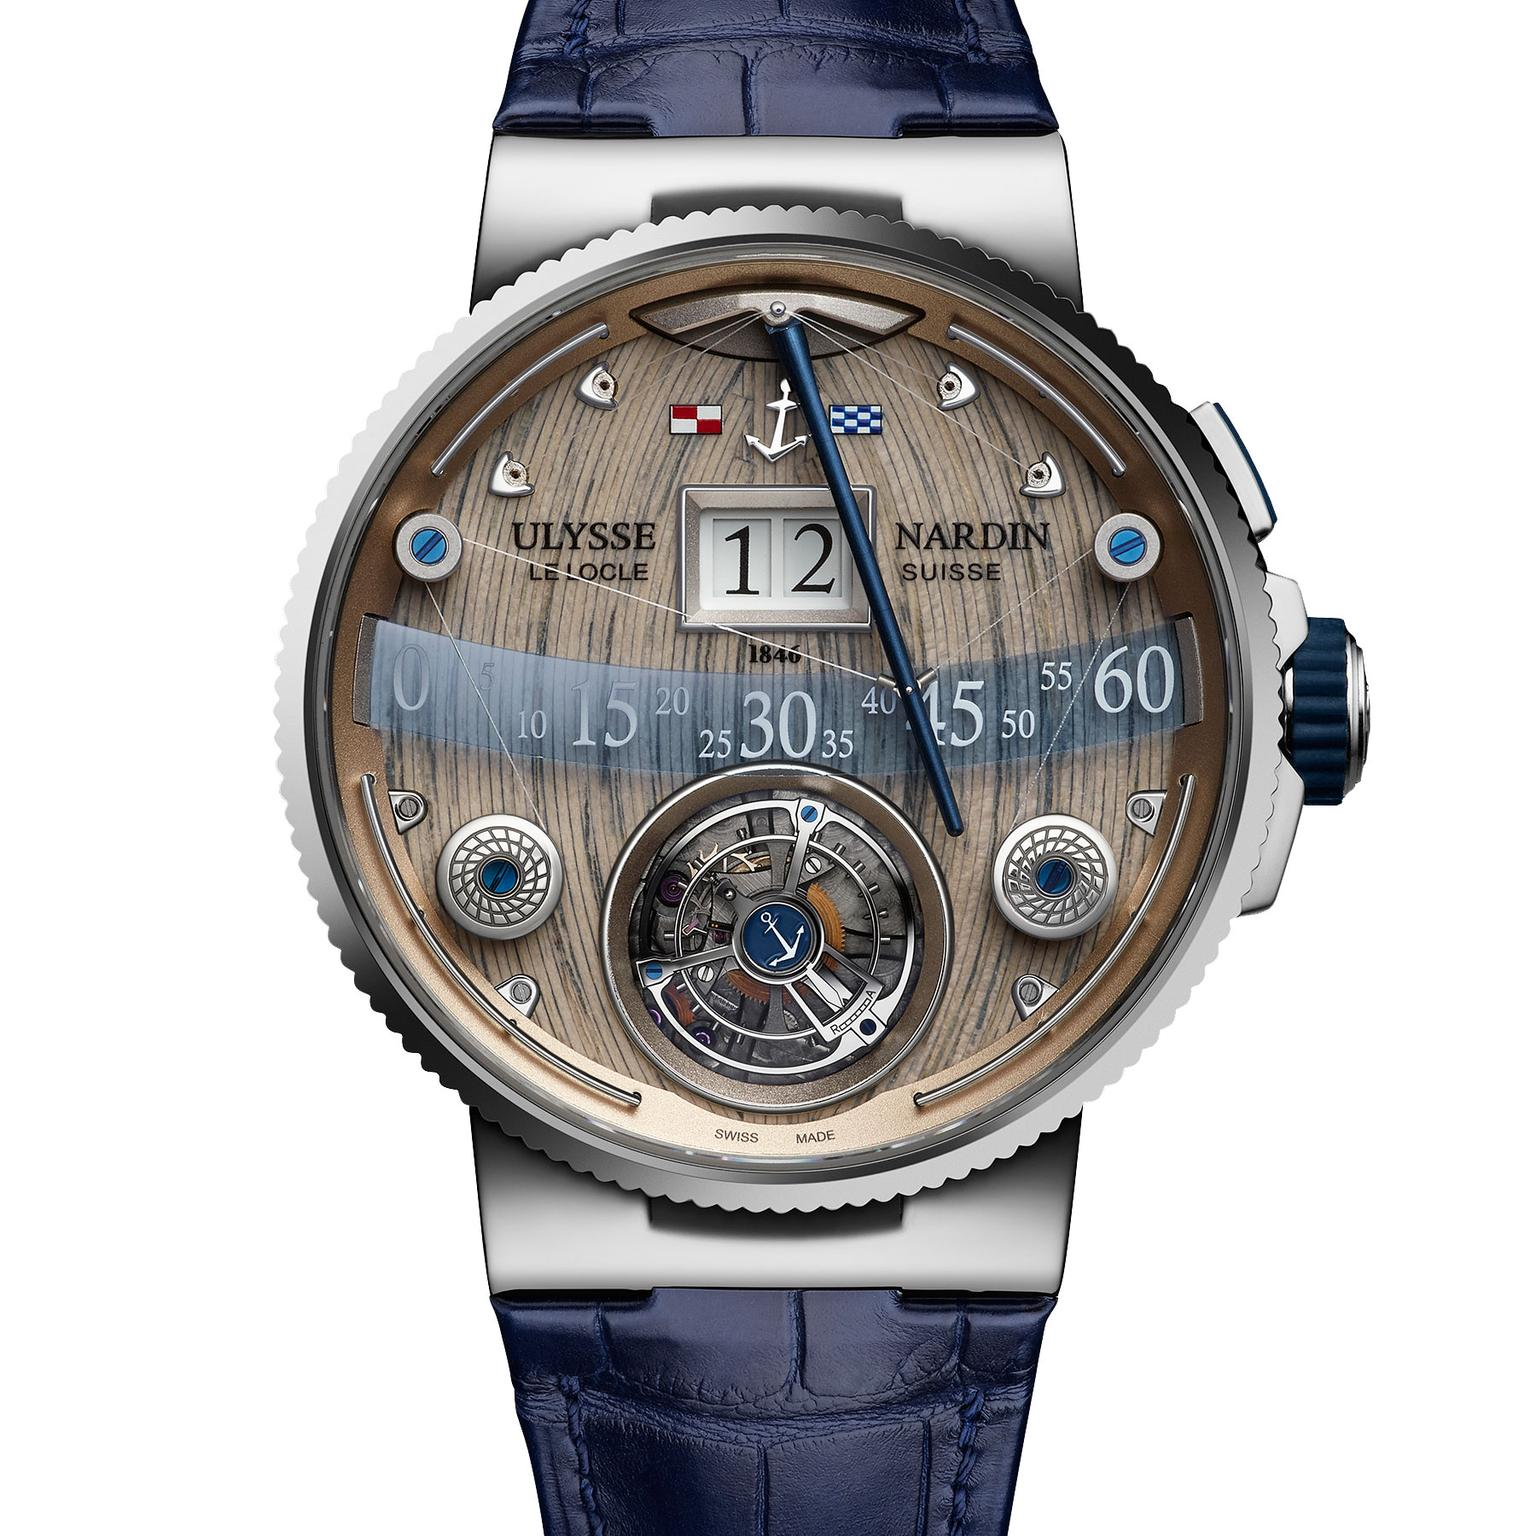 Ulysse Nardin Grand Deck Marine Tourbillon watch for men